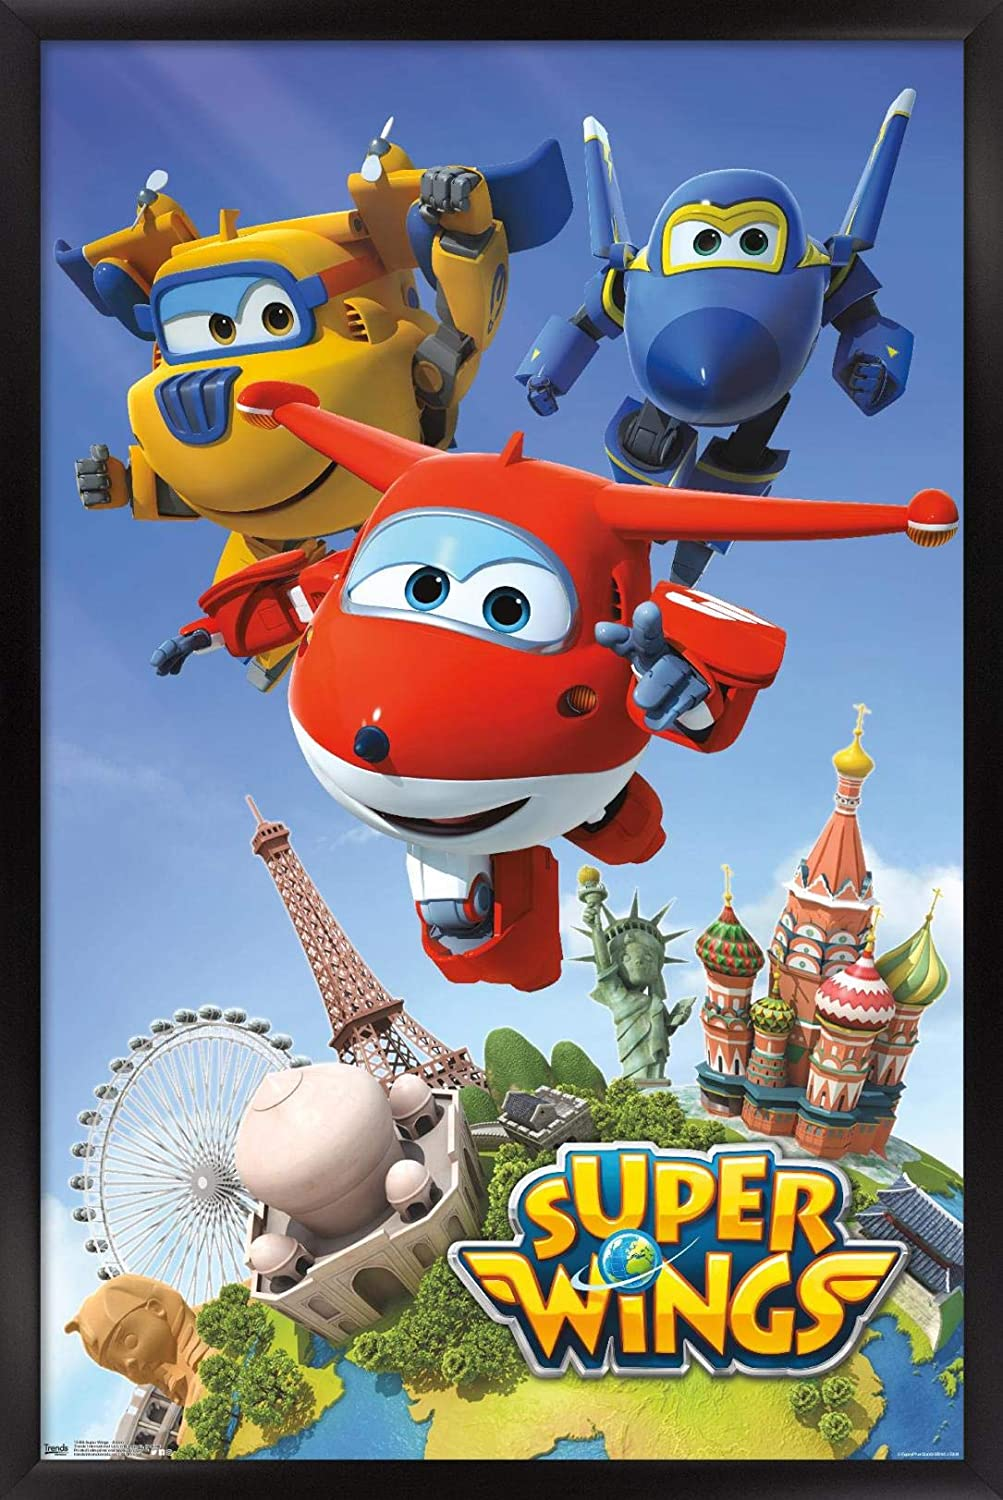 22.375 x 34 Black Framed Version Action Wall Poster Trends International Super Wings